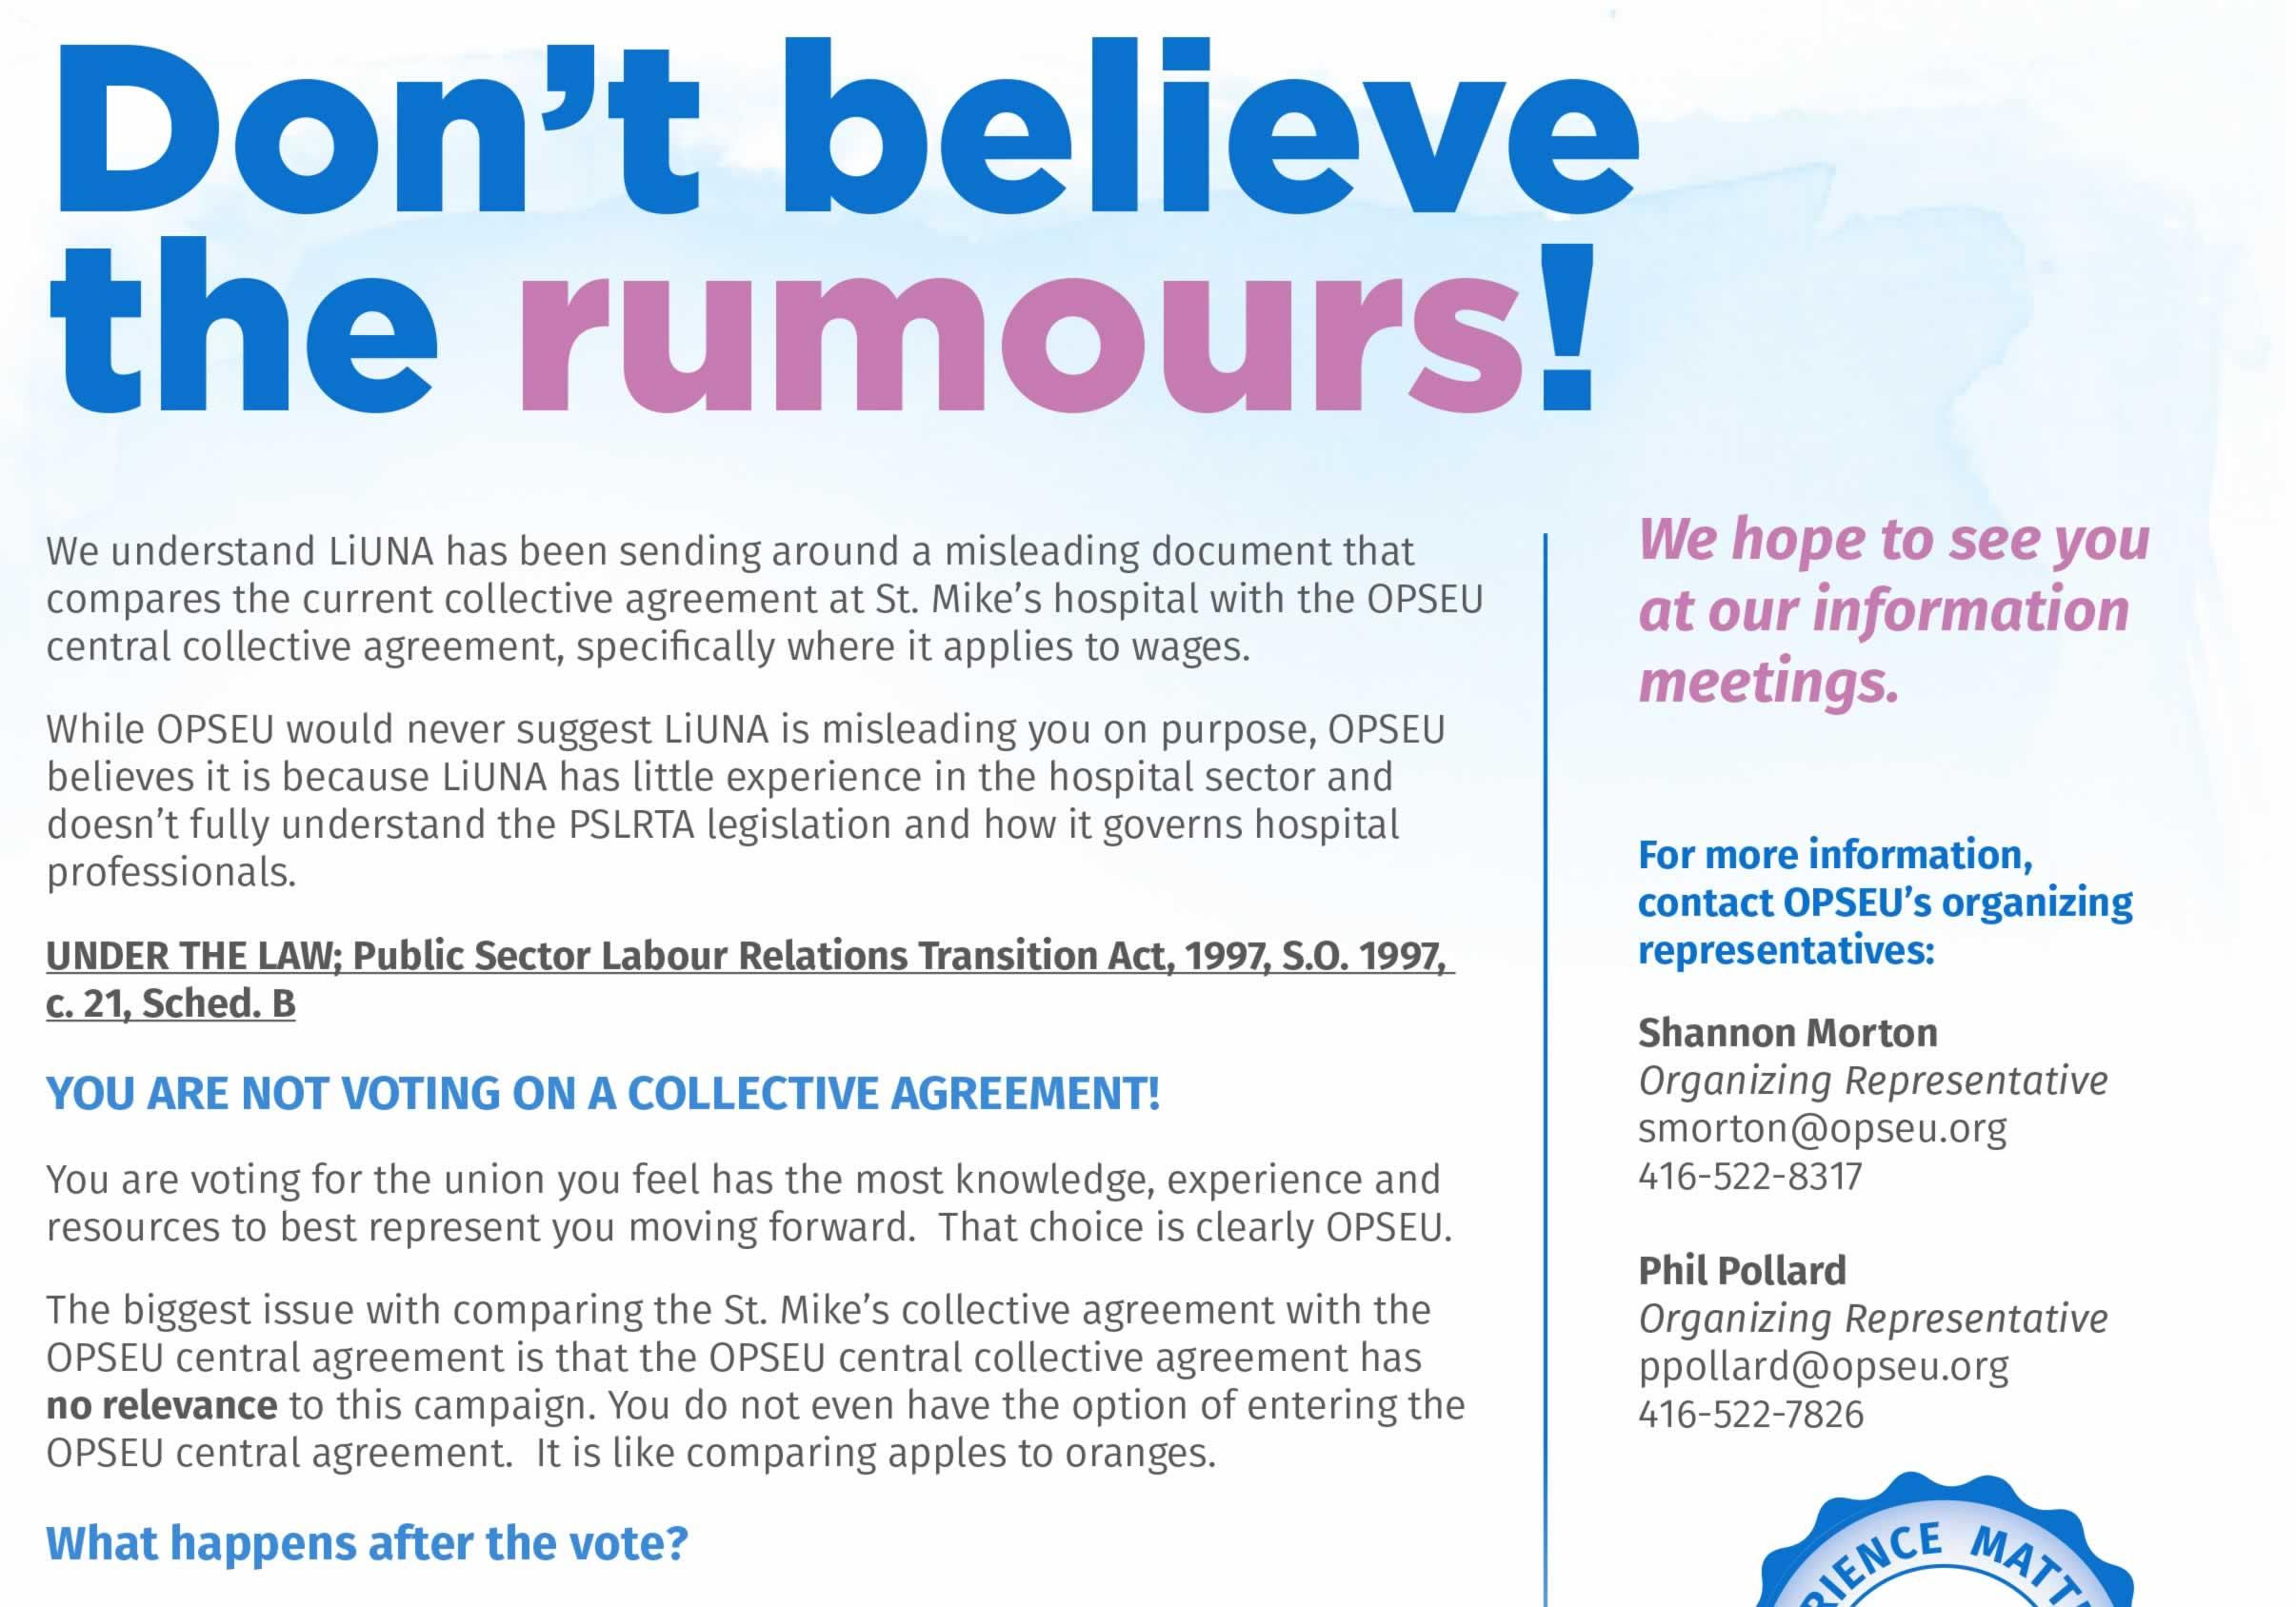 Don't believe the rumours!